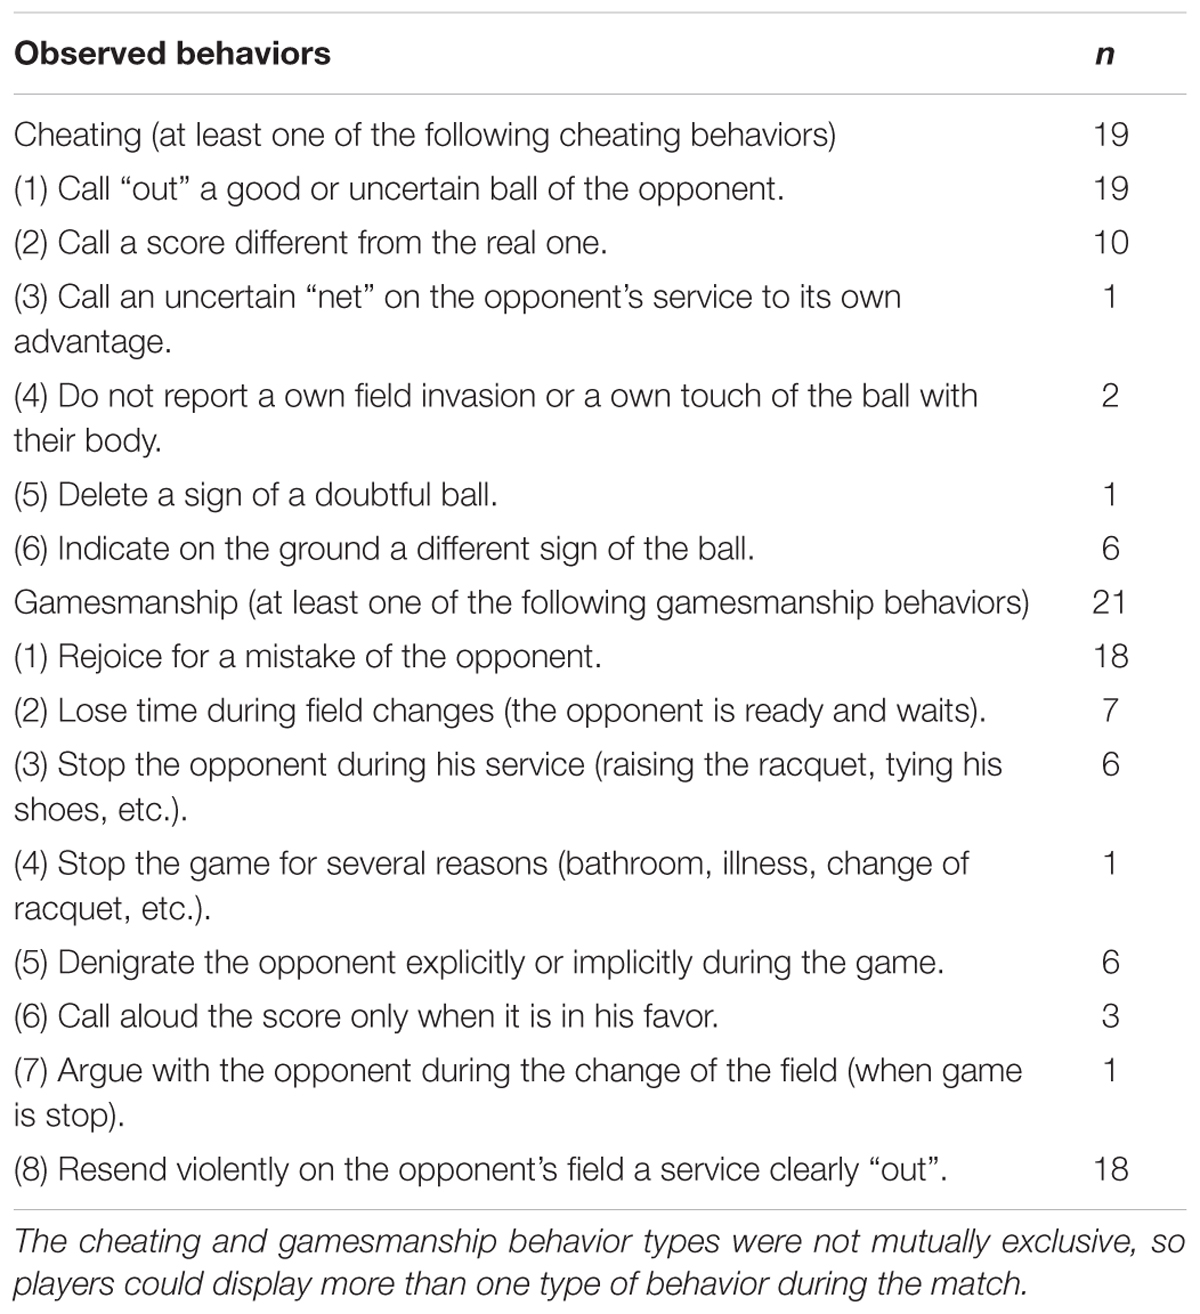 Frontiers | Moral Attitudes Predict Cheating and Gamesmanship ...